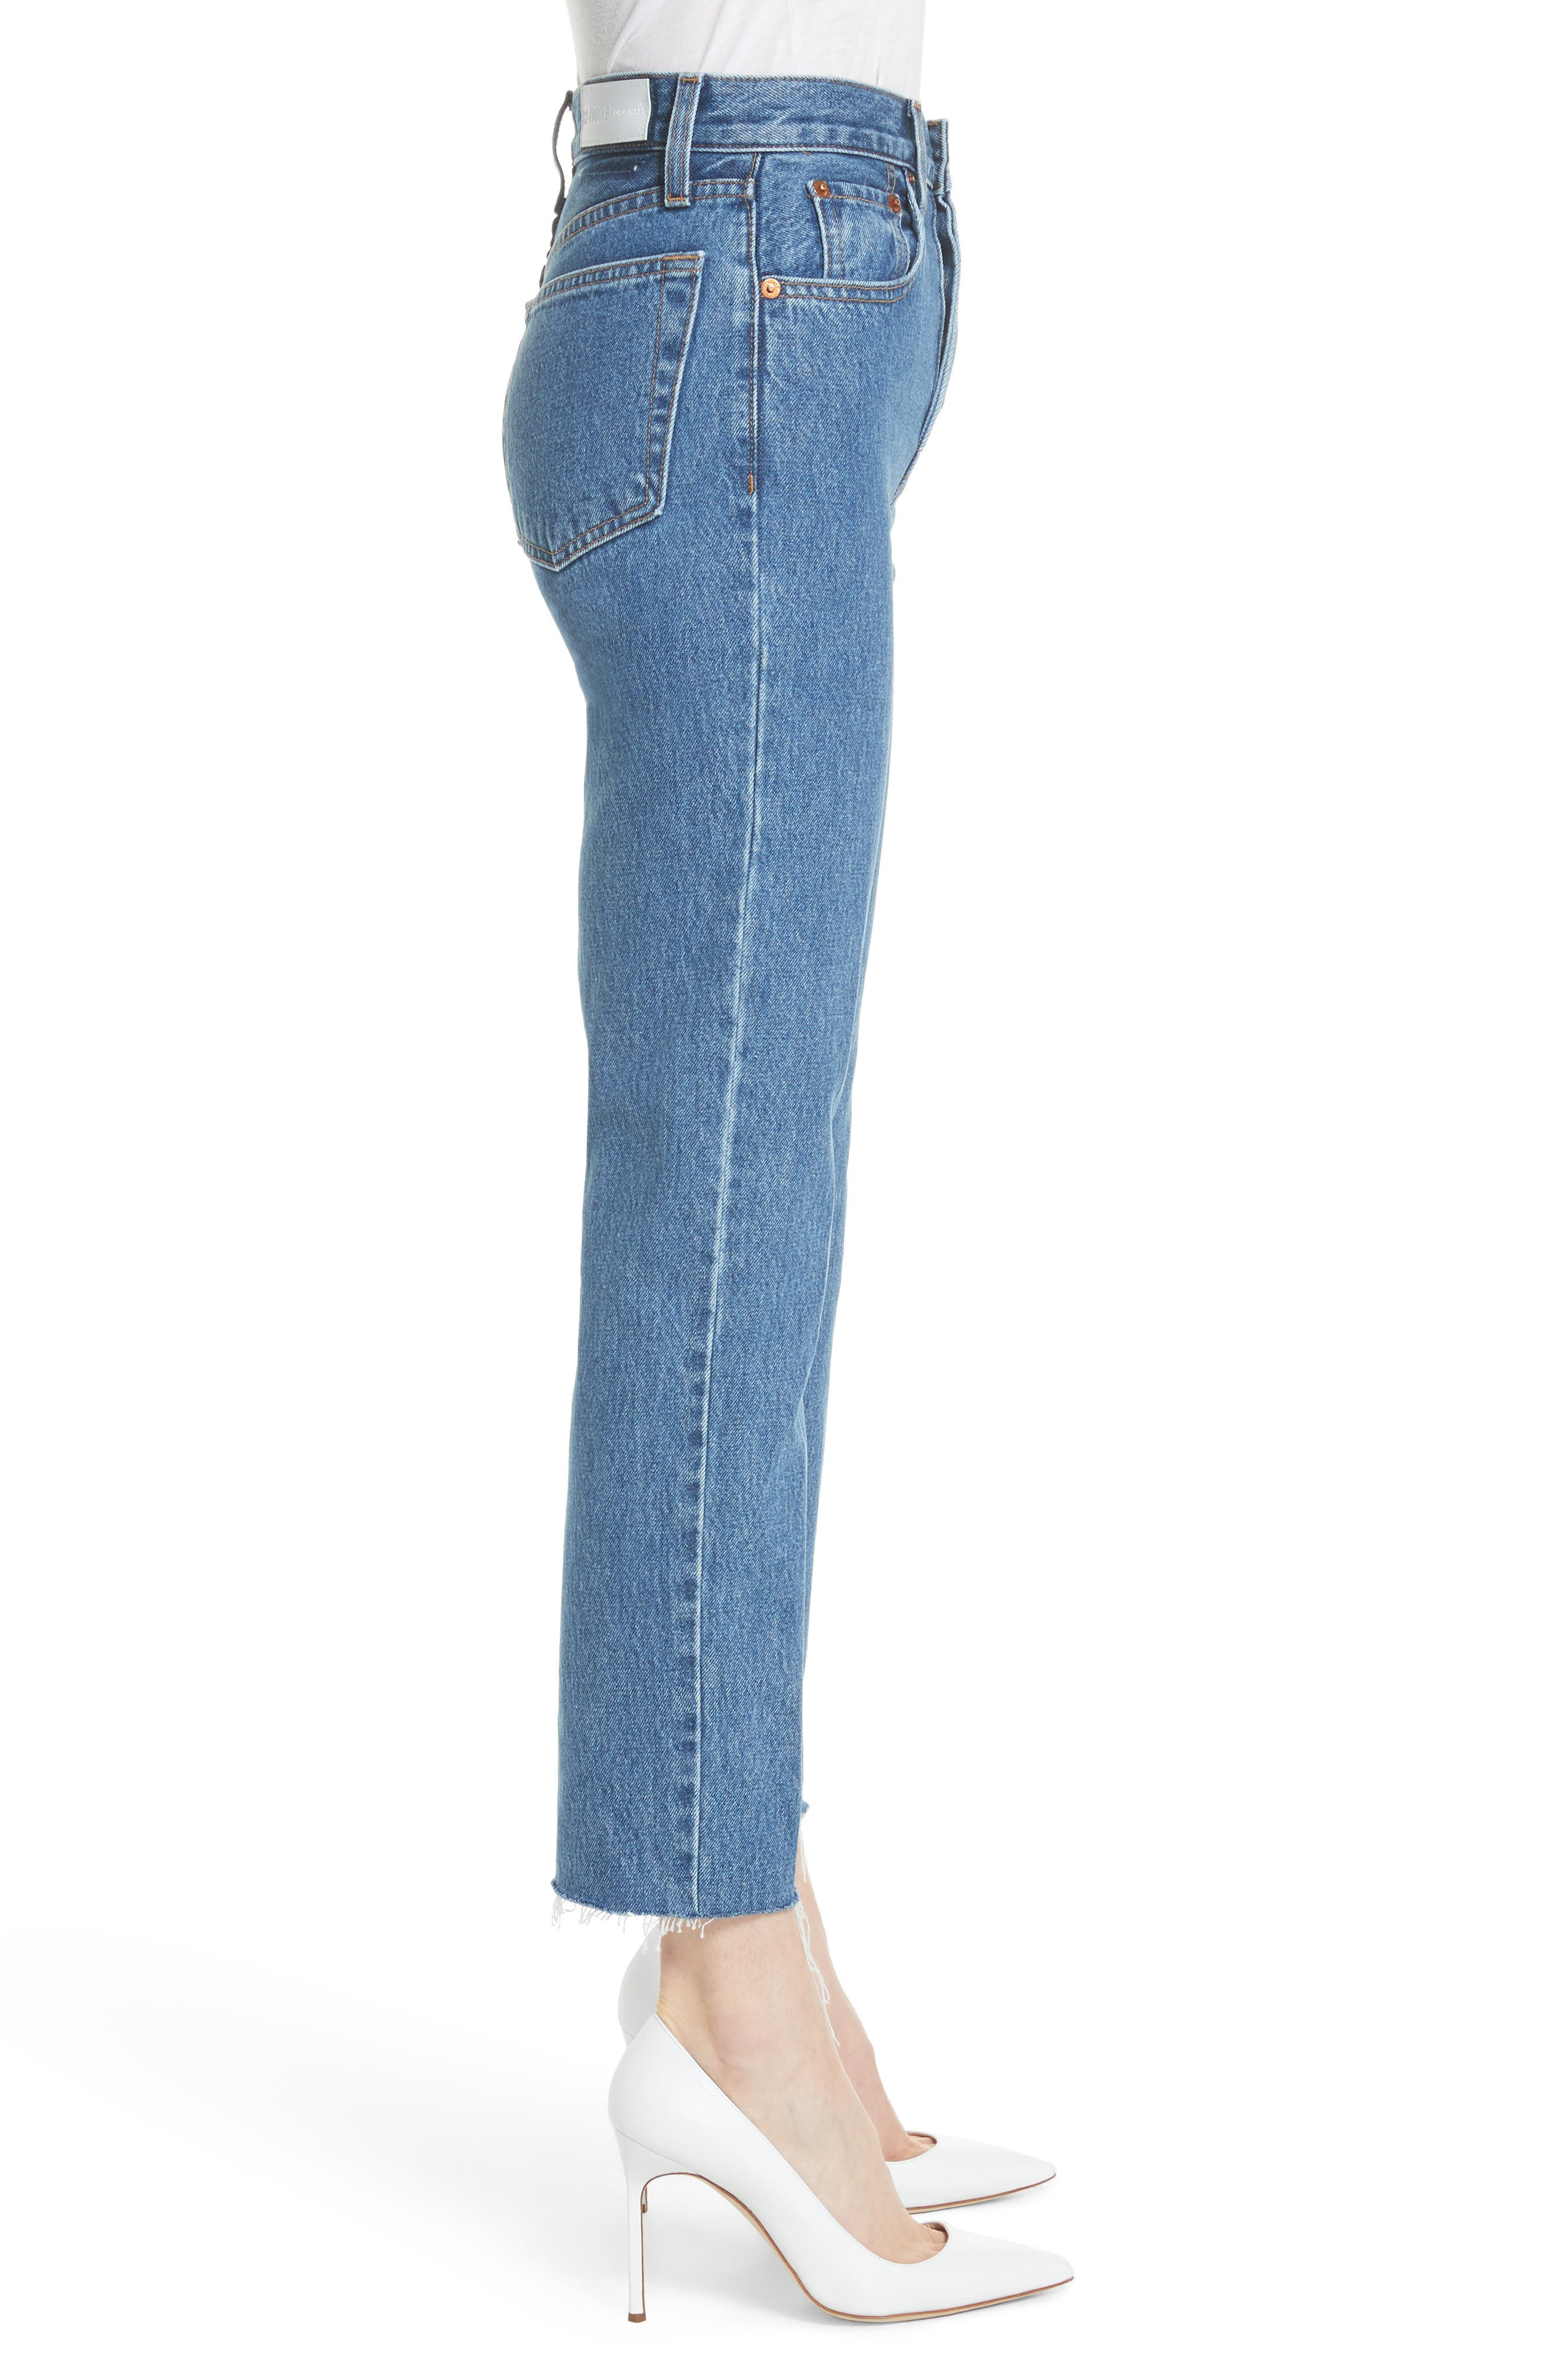 High Waist Stove Pipe Jeans,                             Alternate thumbnail 3, color,                             Med Vain